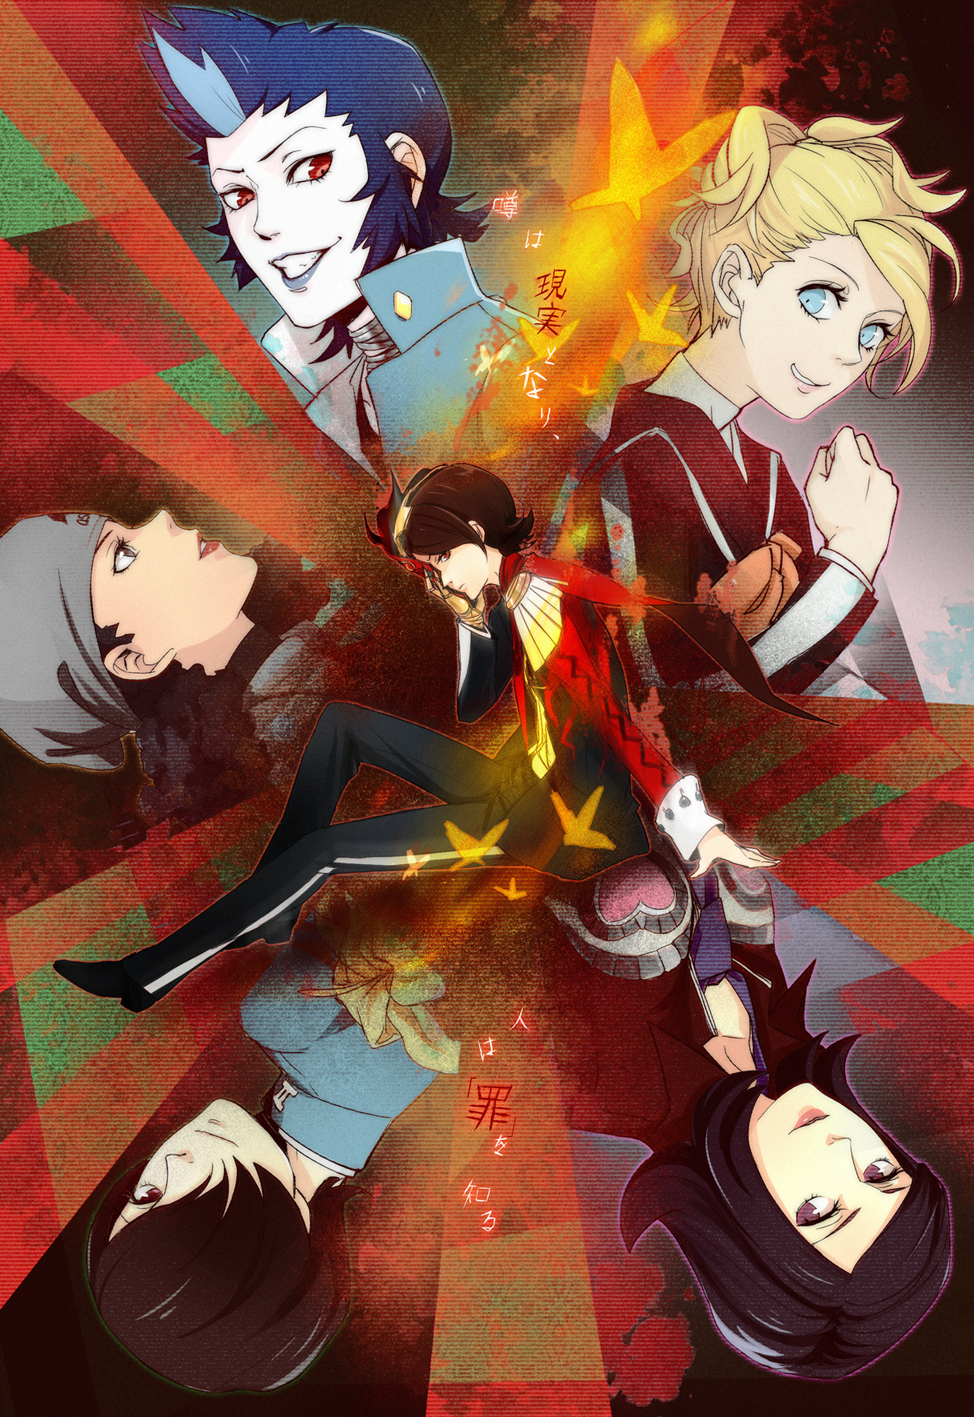 apollo_(persona_2) beanie black_hair blonde_hair blue_eyes blue_hair brown_hair hair_covering_one_eye hair_over_one_eye hat highres kurosu_jun lipstick lisa_silverman makeup mask mayuzumi_yukino mishina_eikichi persona persona_2 purple_eyes red_eyes school_uniform short_hair sunday31 suou_tatsuya violet_eyes